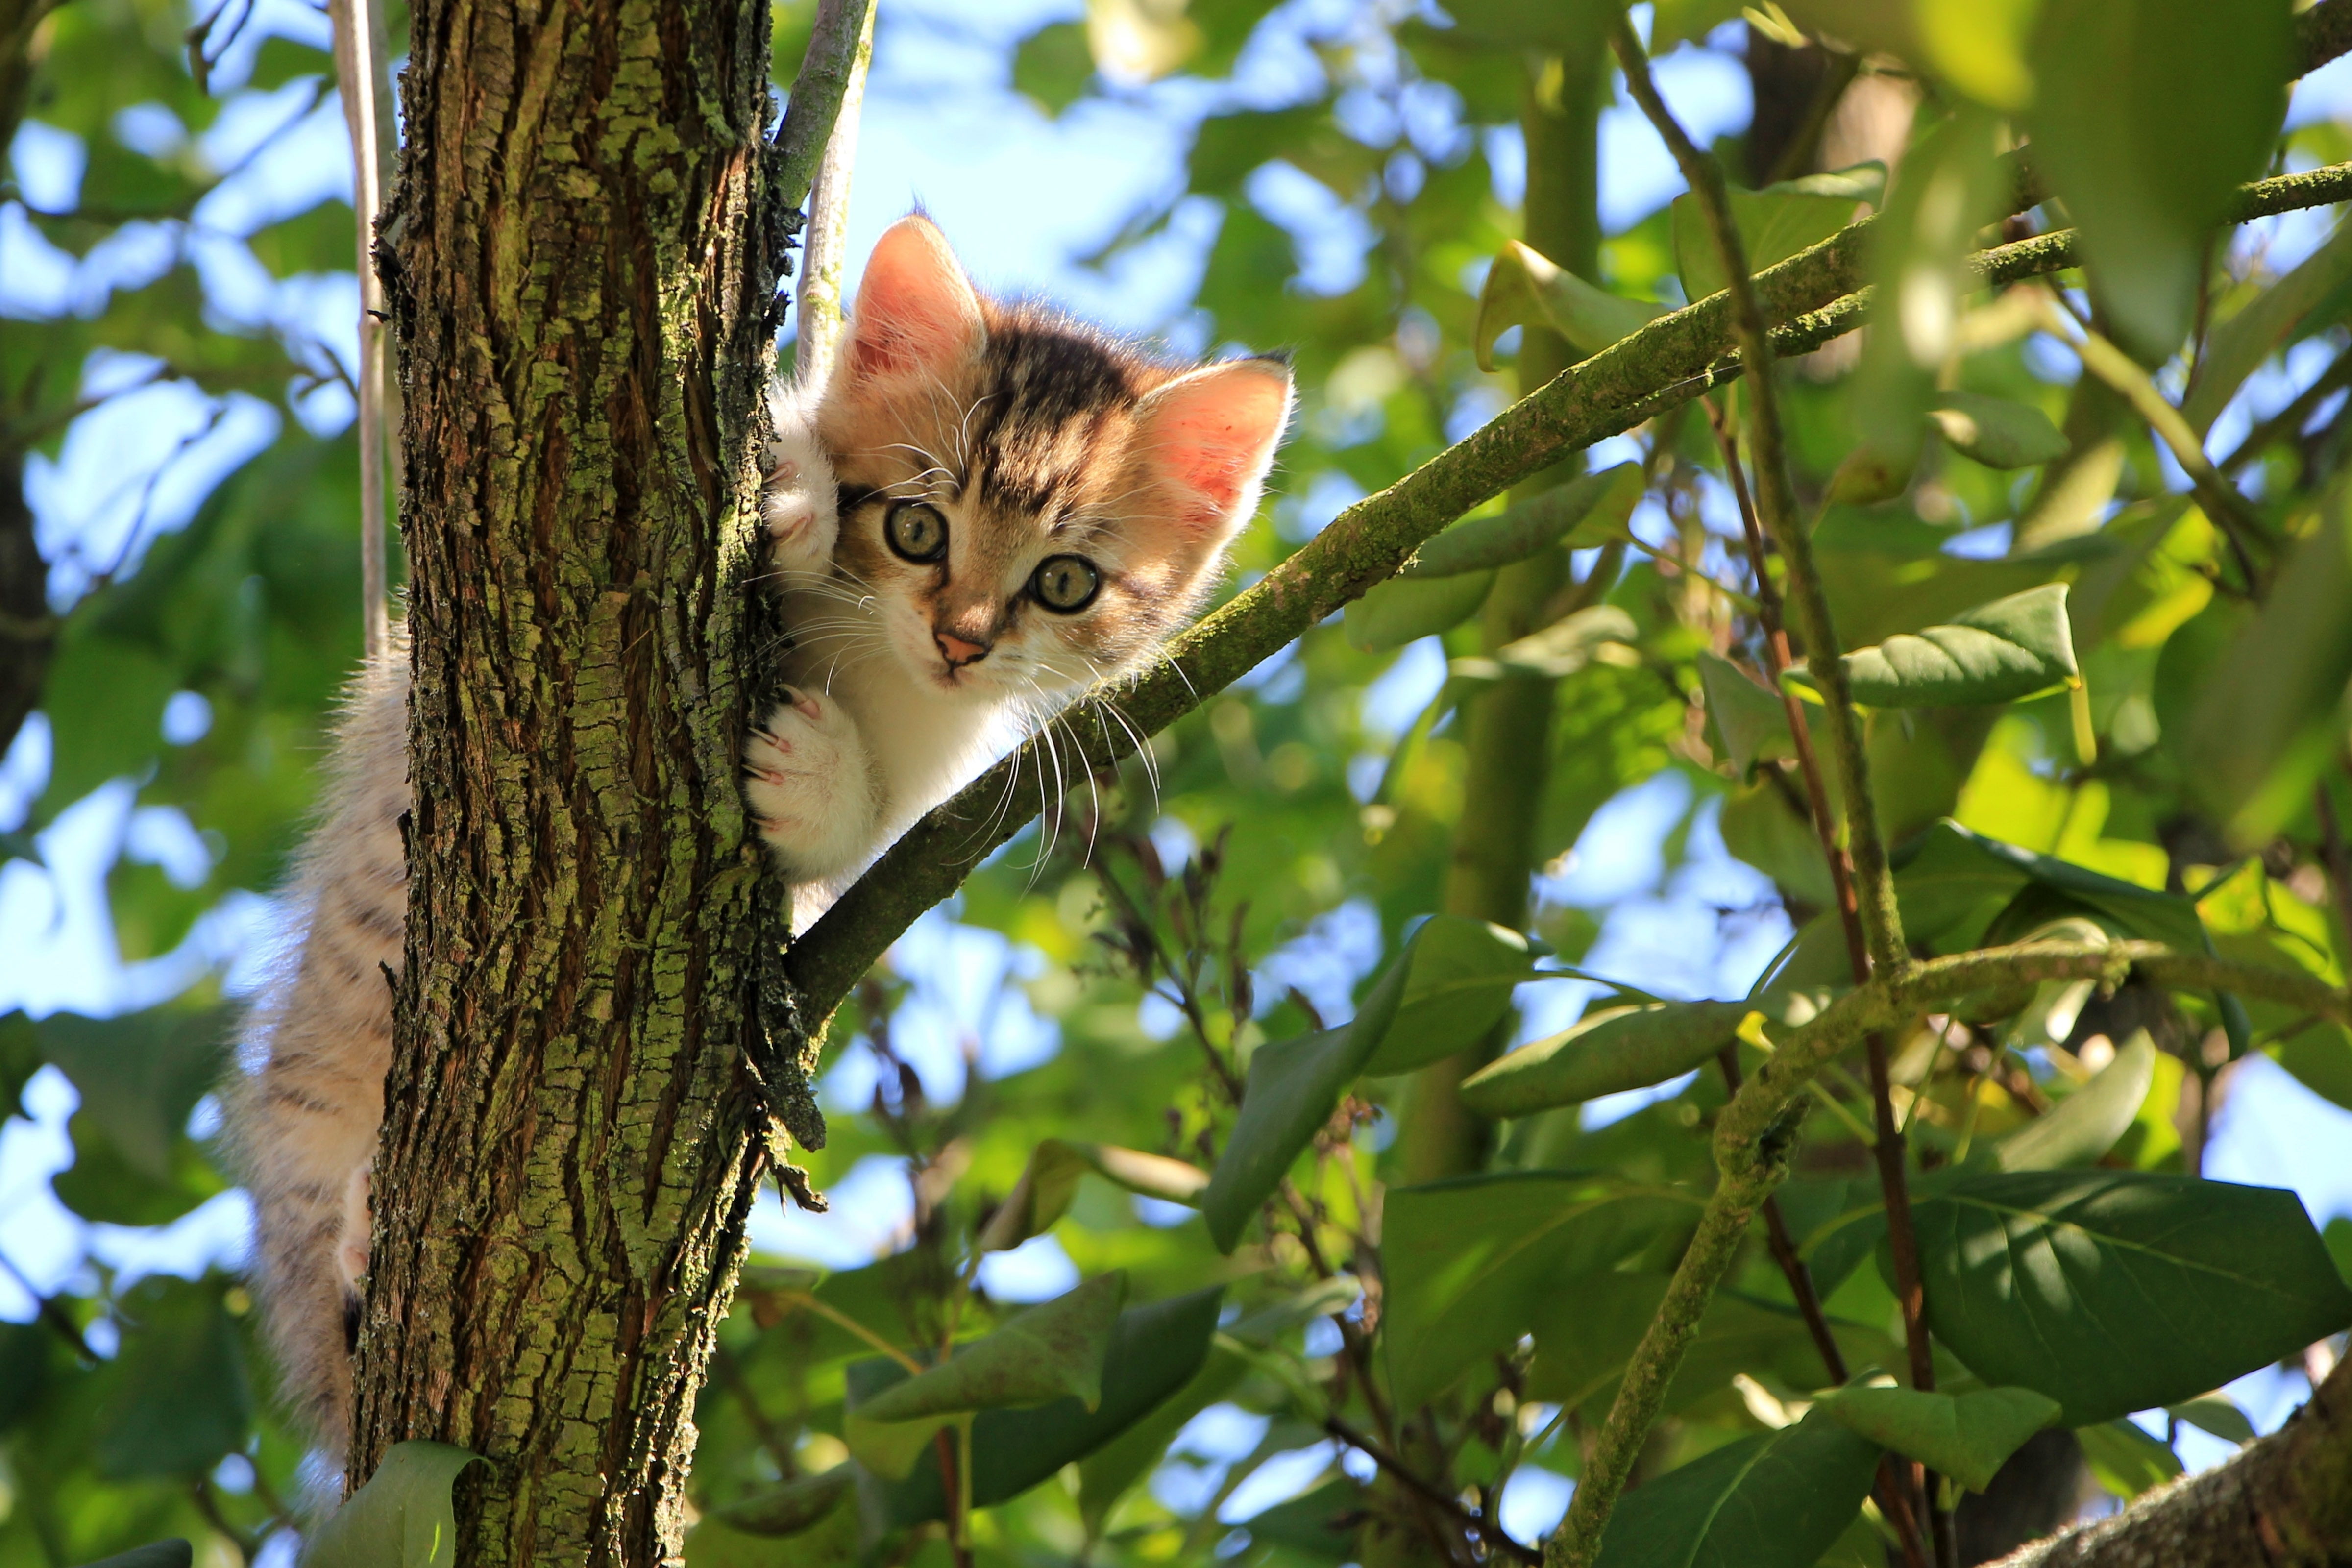 74198 Screensavers and Wallpapers Kitten for phone. Download Sweetheart, Animals, Funny, Wood, Cat, Kitty, Kitten, Tree, Nice pictures for free